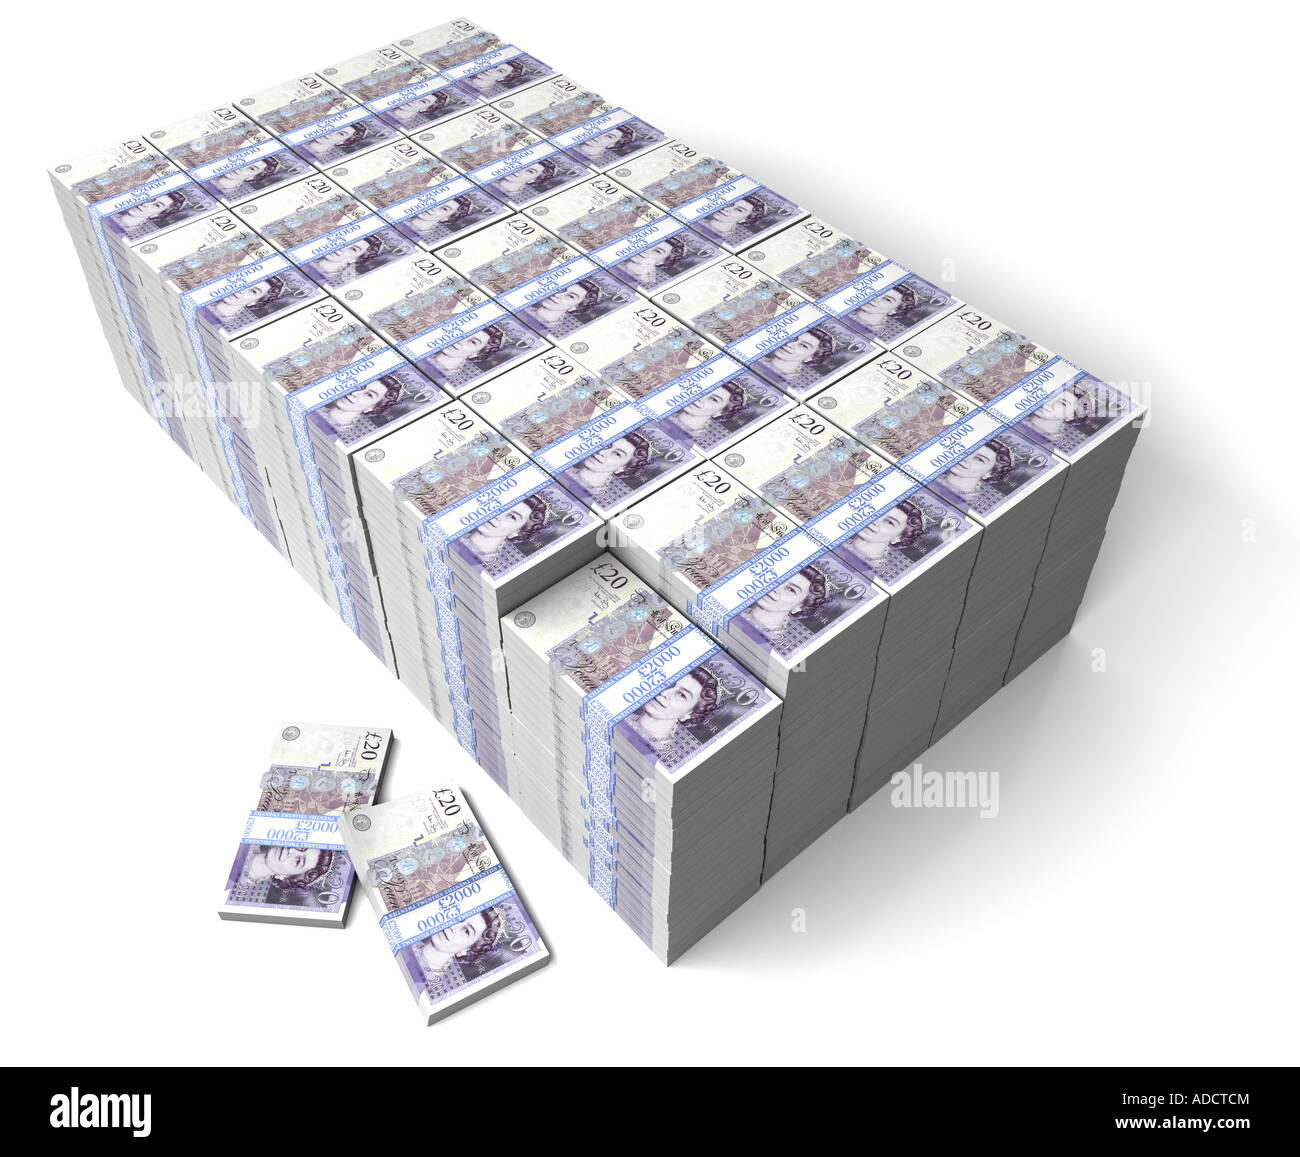 A Million Pounds. Bank notes stacked upon a white background. Wealth. Money. - Stock Image